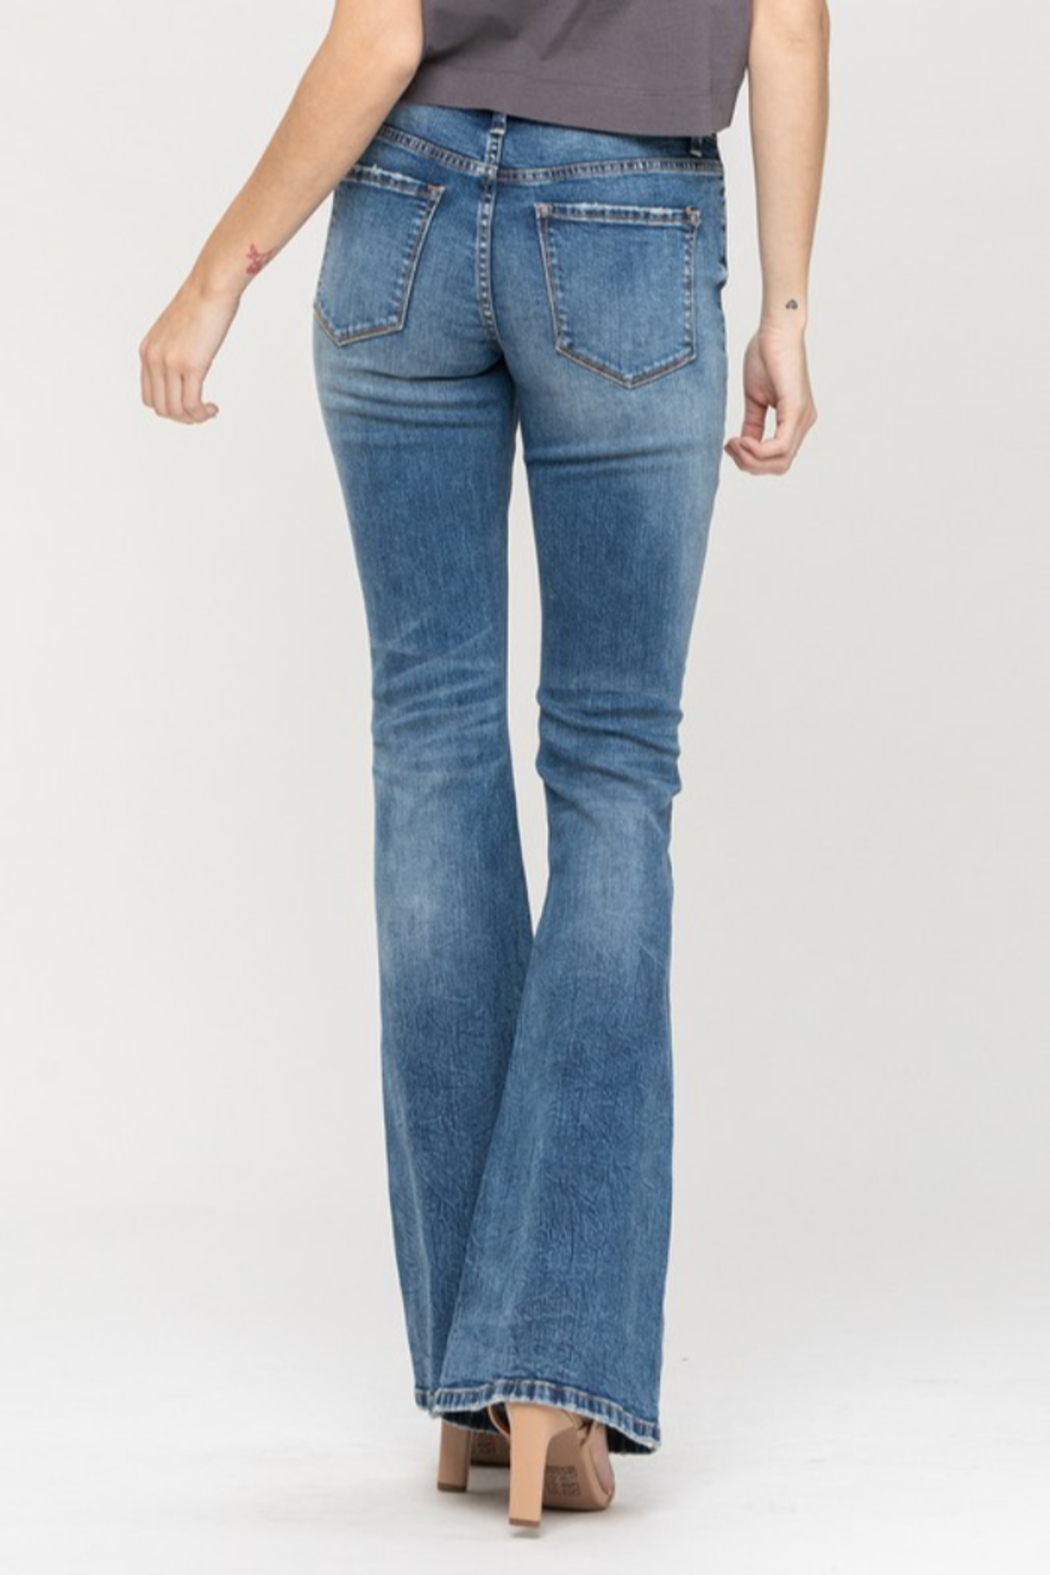 Vervet High waist Button up Flare Jeans - Side Cropped Image